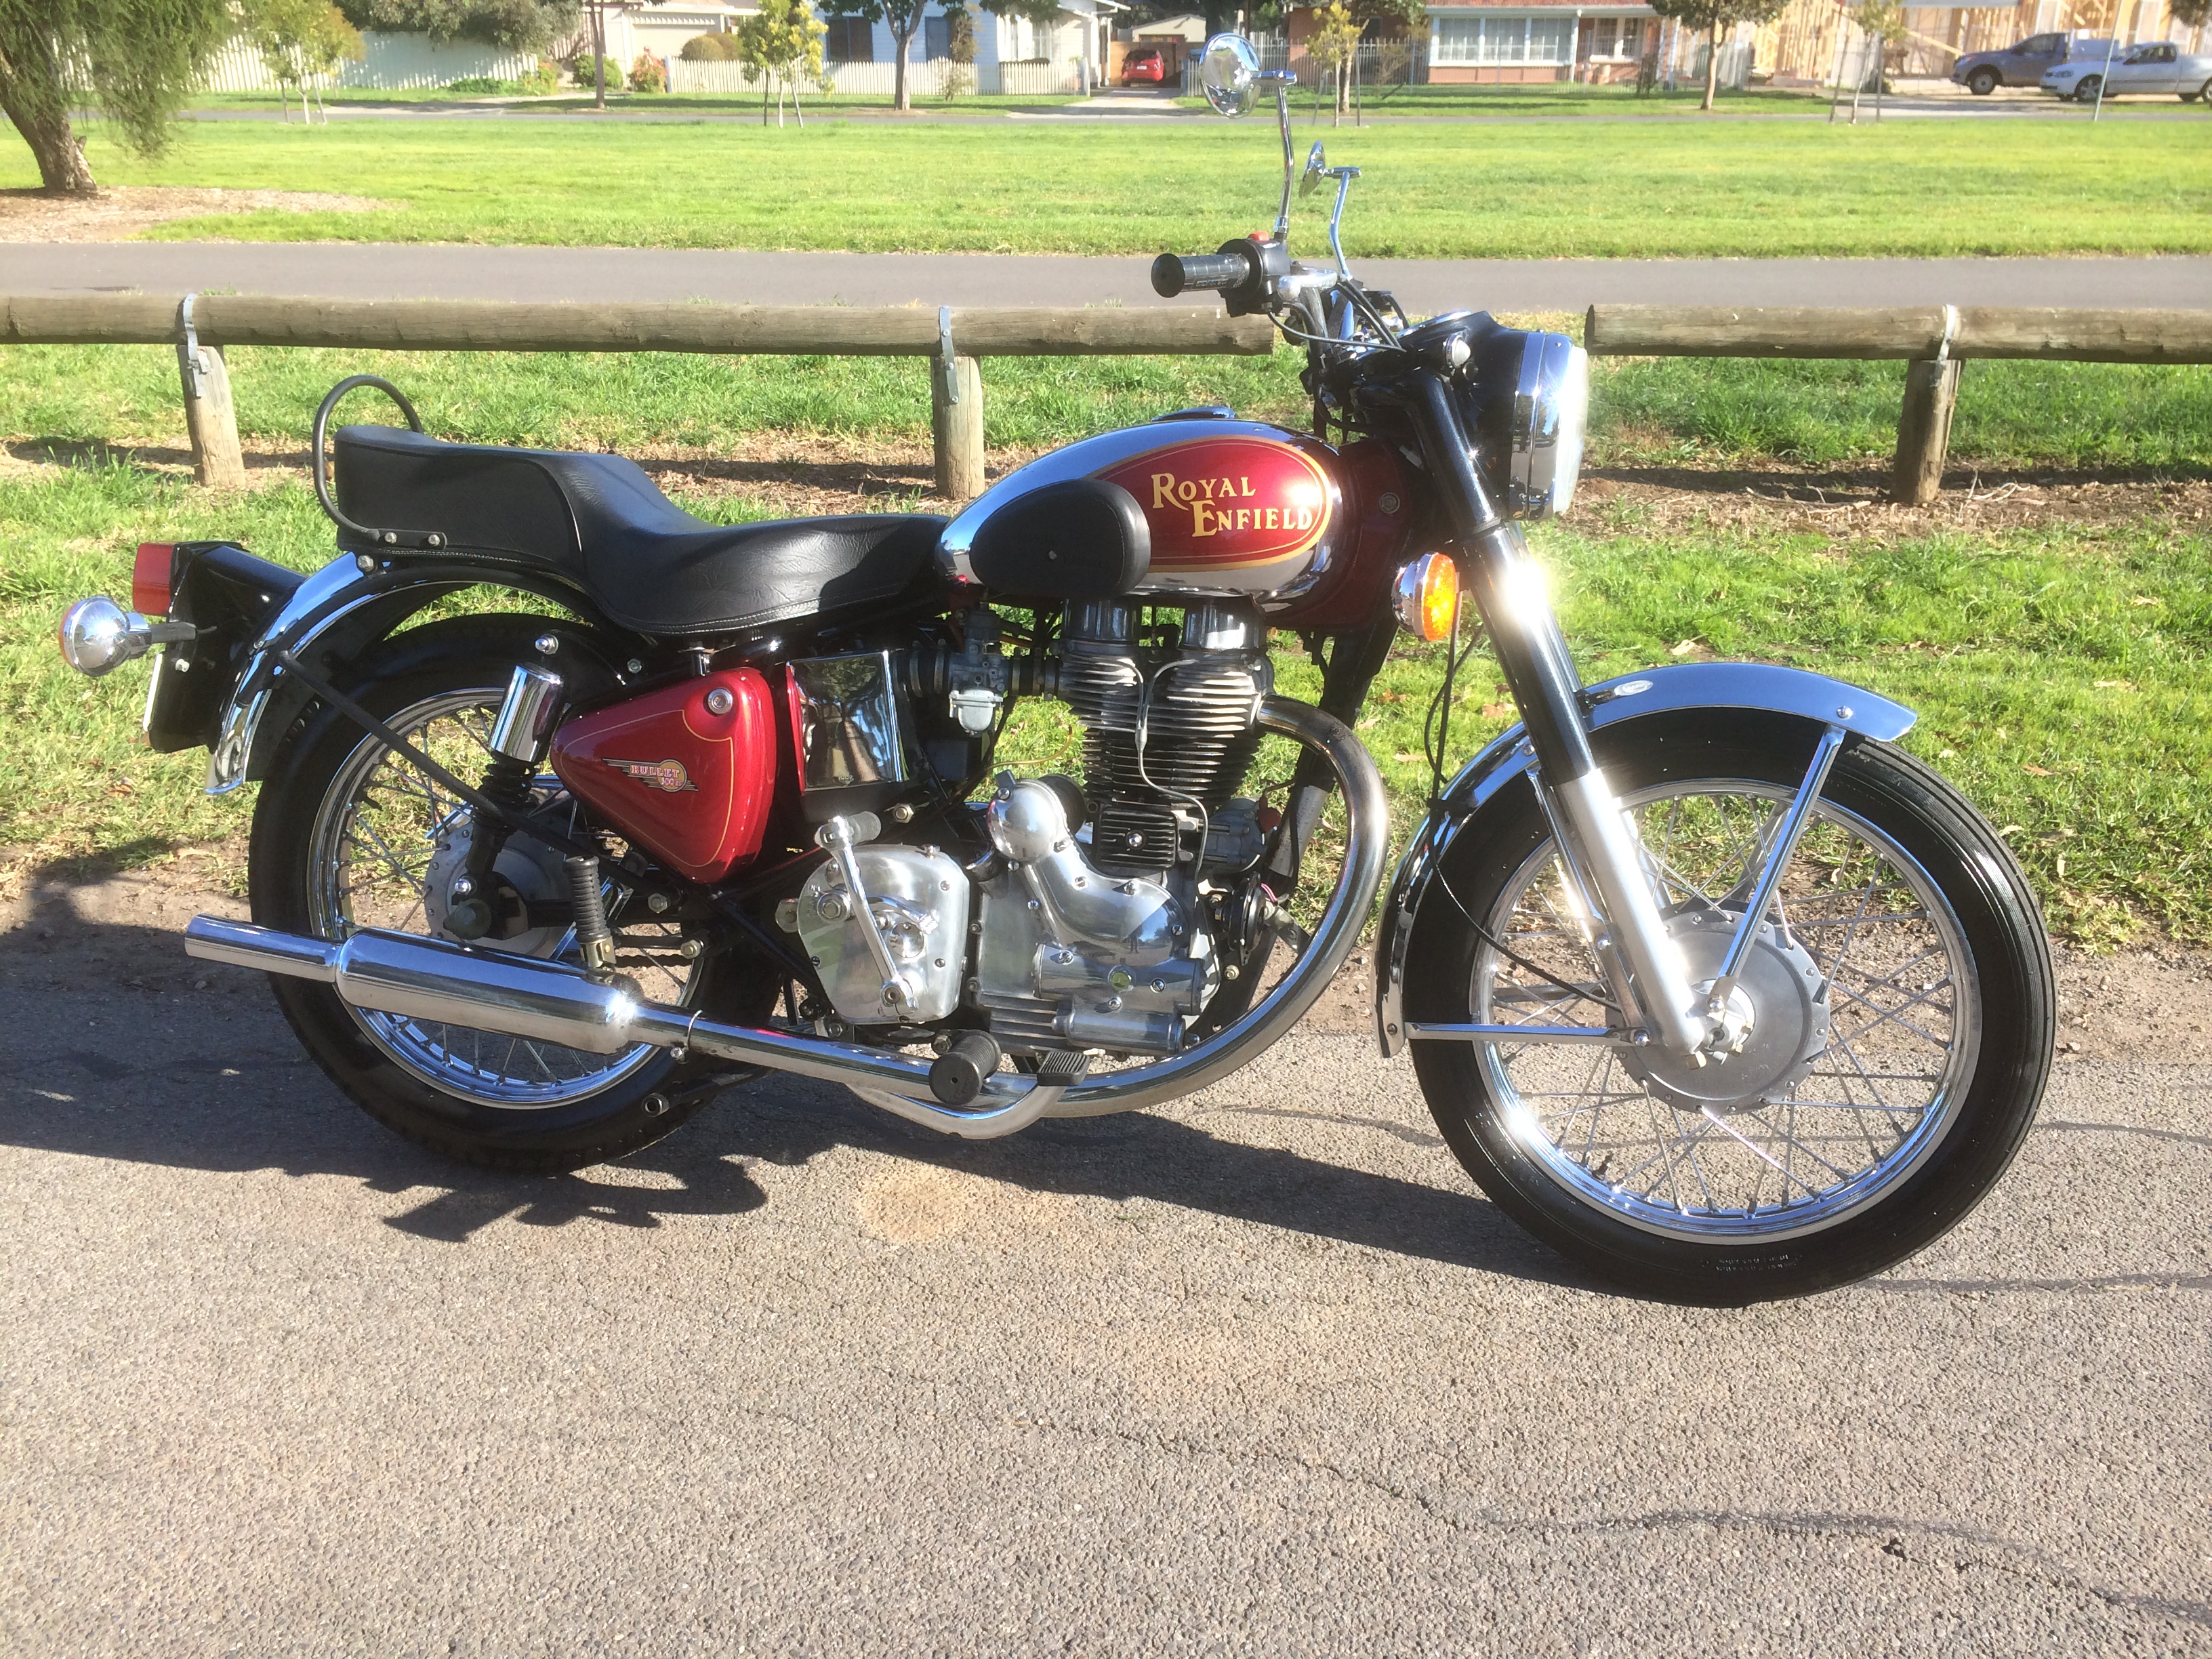 Royal Enfield Bullet 350 Army 1996 images #122780